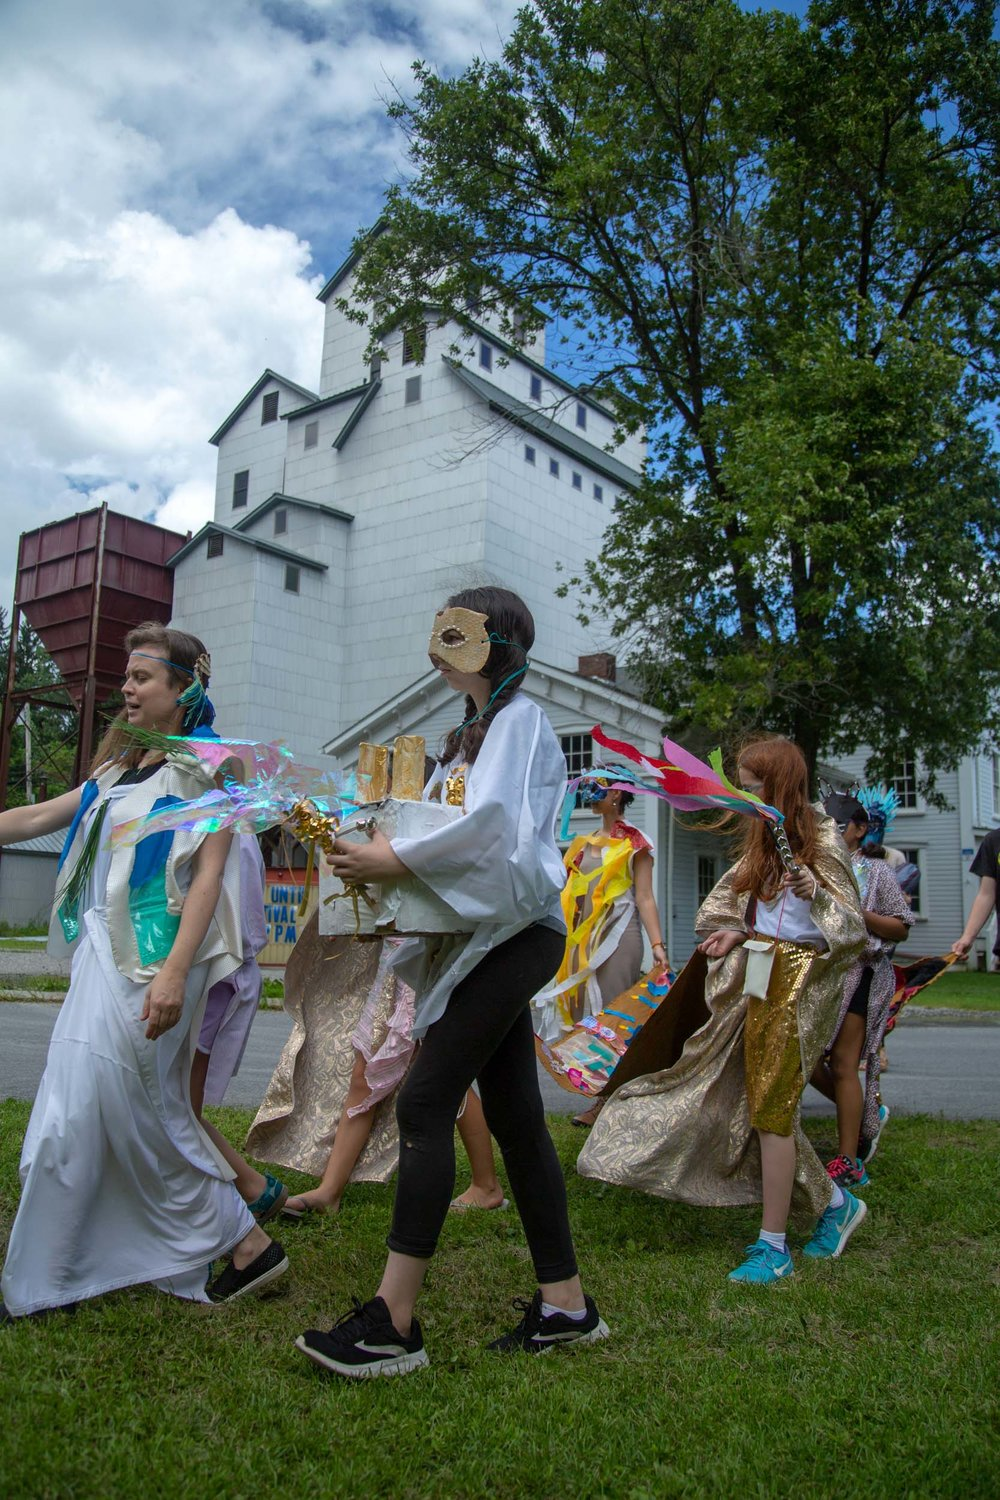 wassaic-project-education-camp-wassaic-2018-08-03-13-59-58.jpg